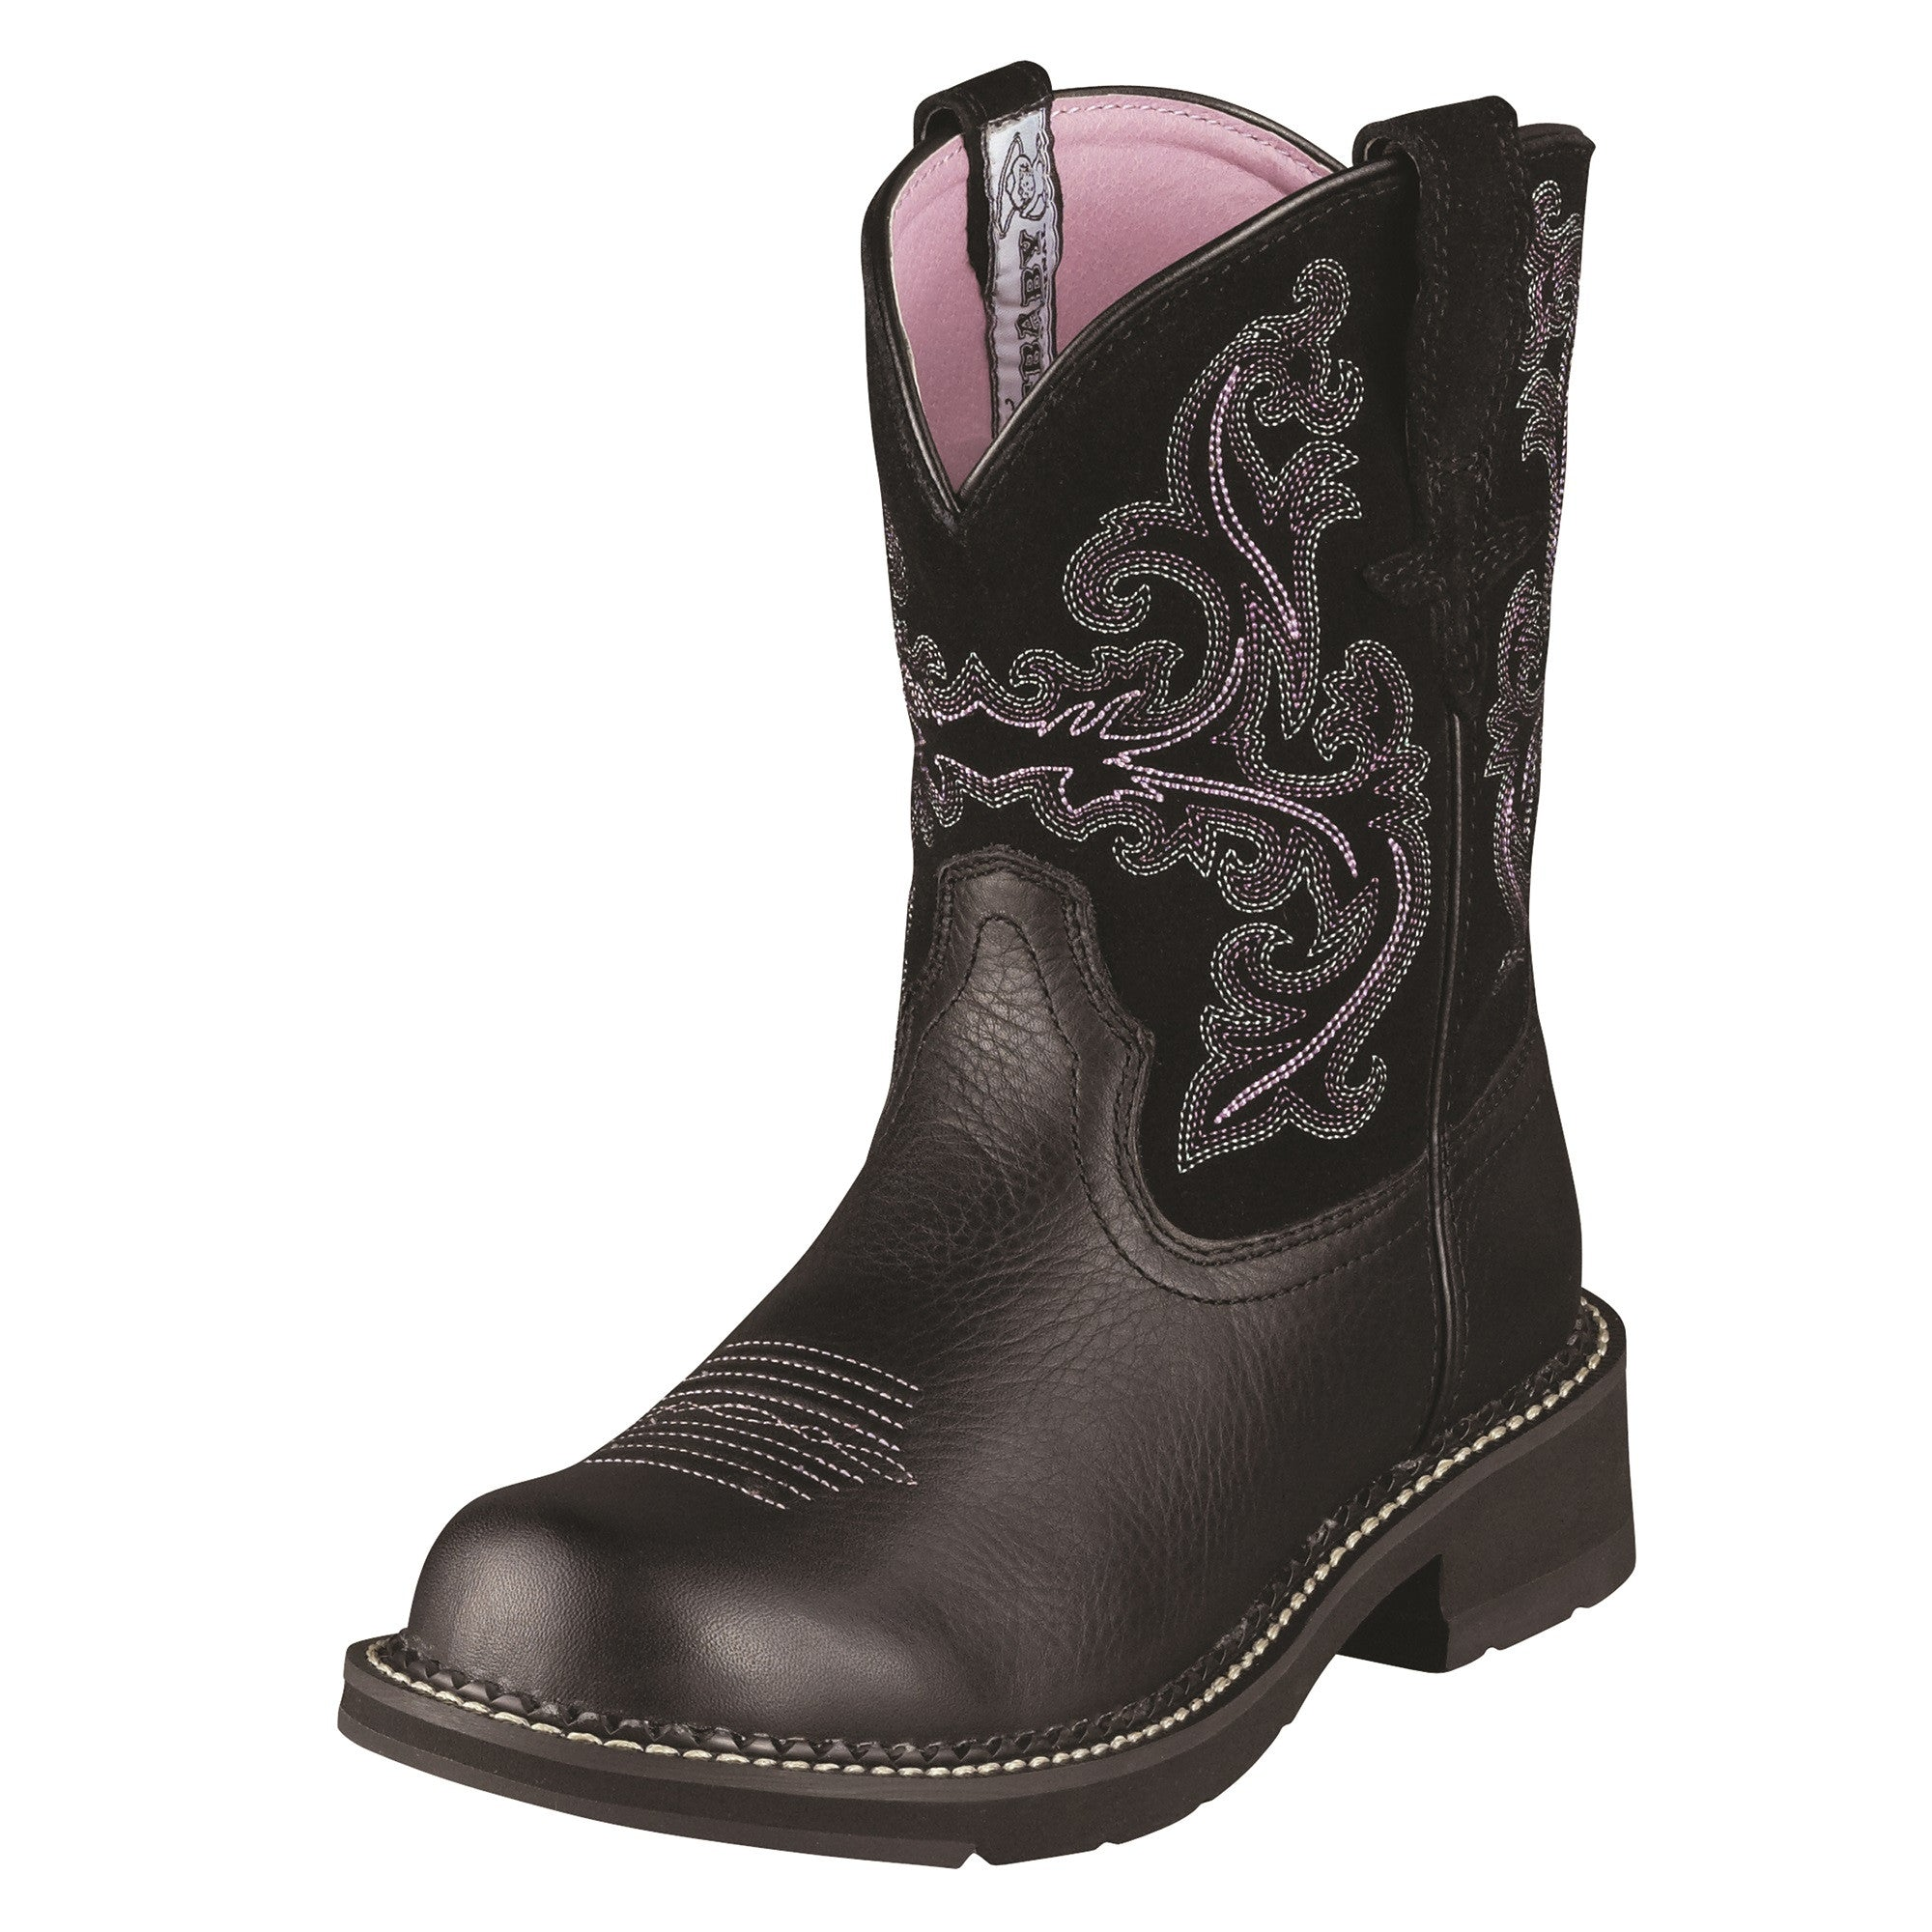 Women's Ariat Fatbaby II Boot #10004729